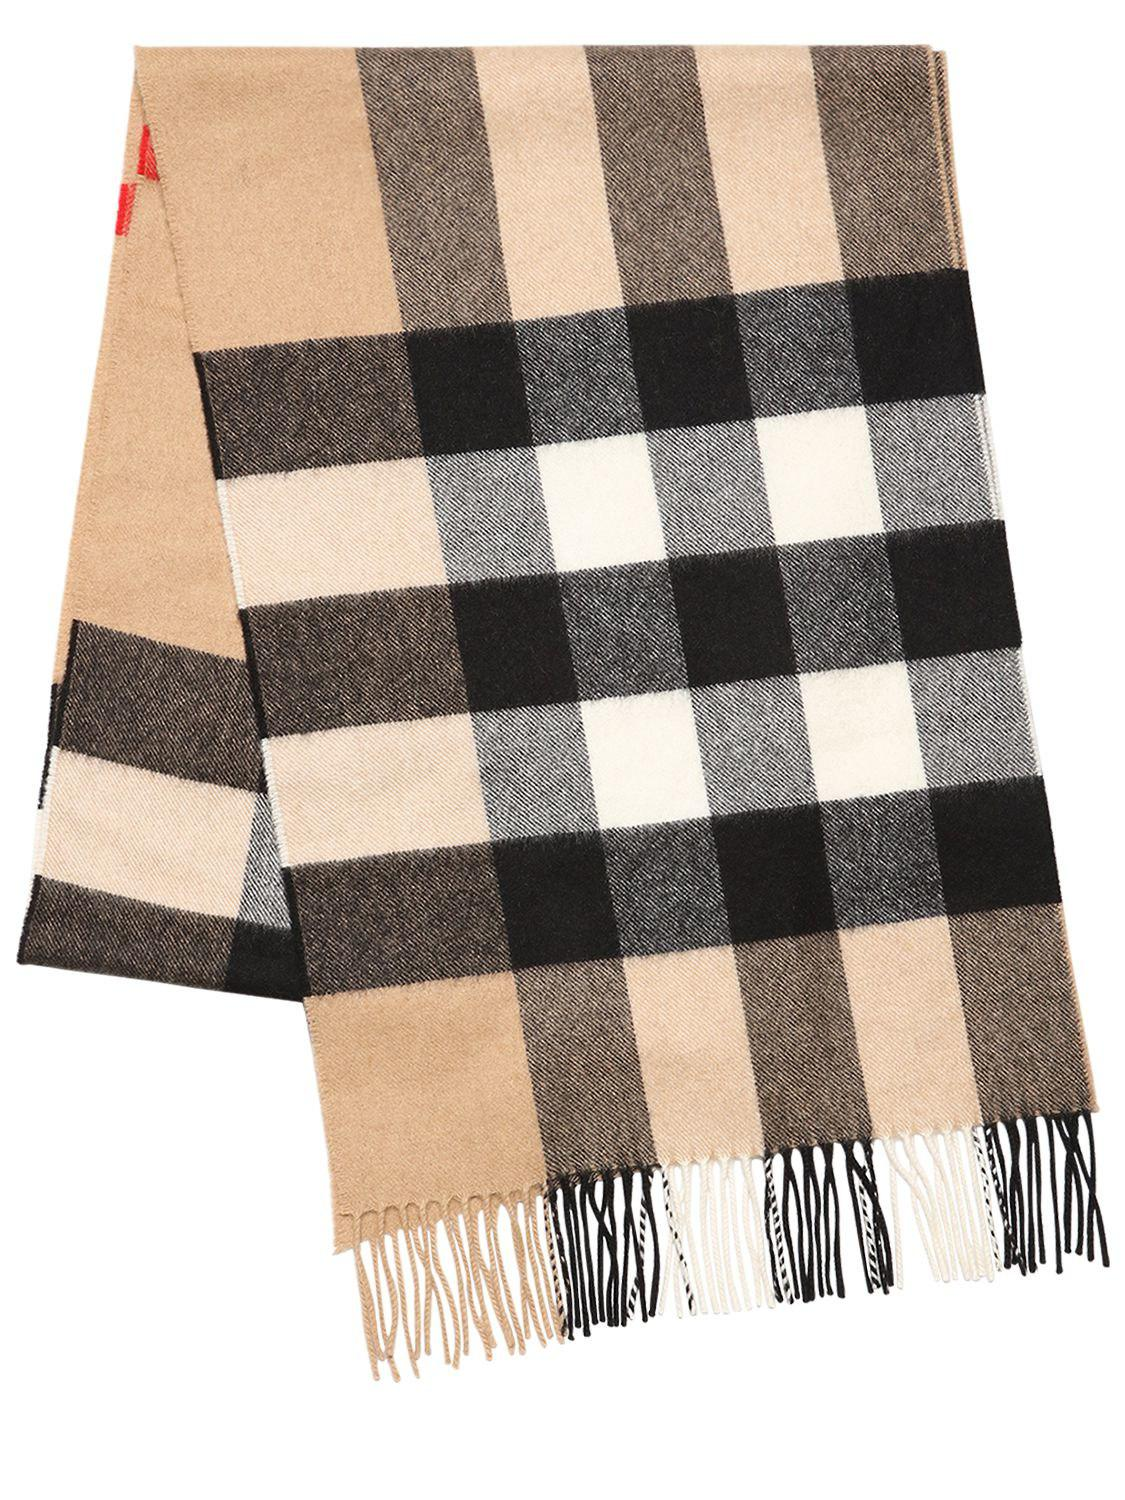 84c5b73f11df Burberry Macro Check Fringed Cashmere Scarf in Black for Men - Lyst